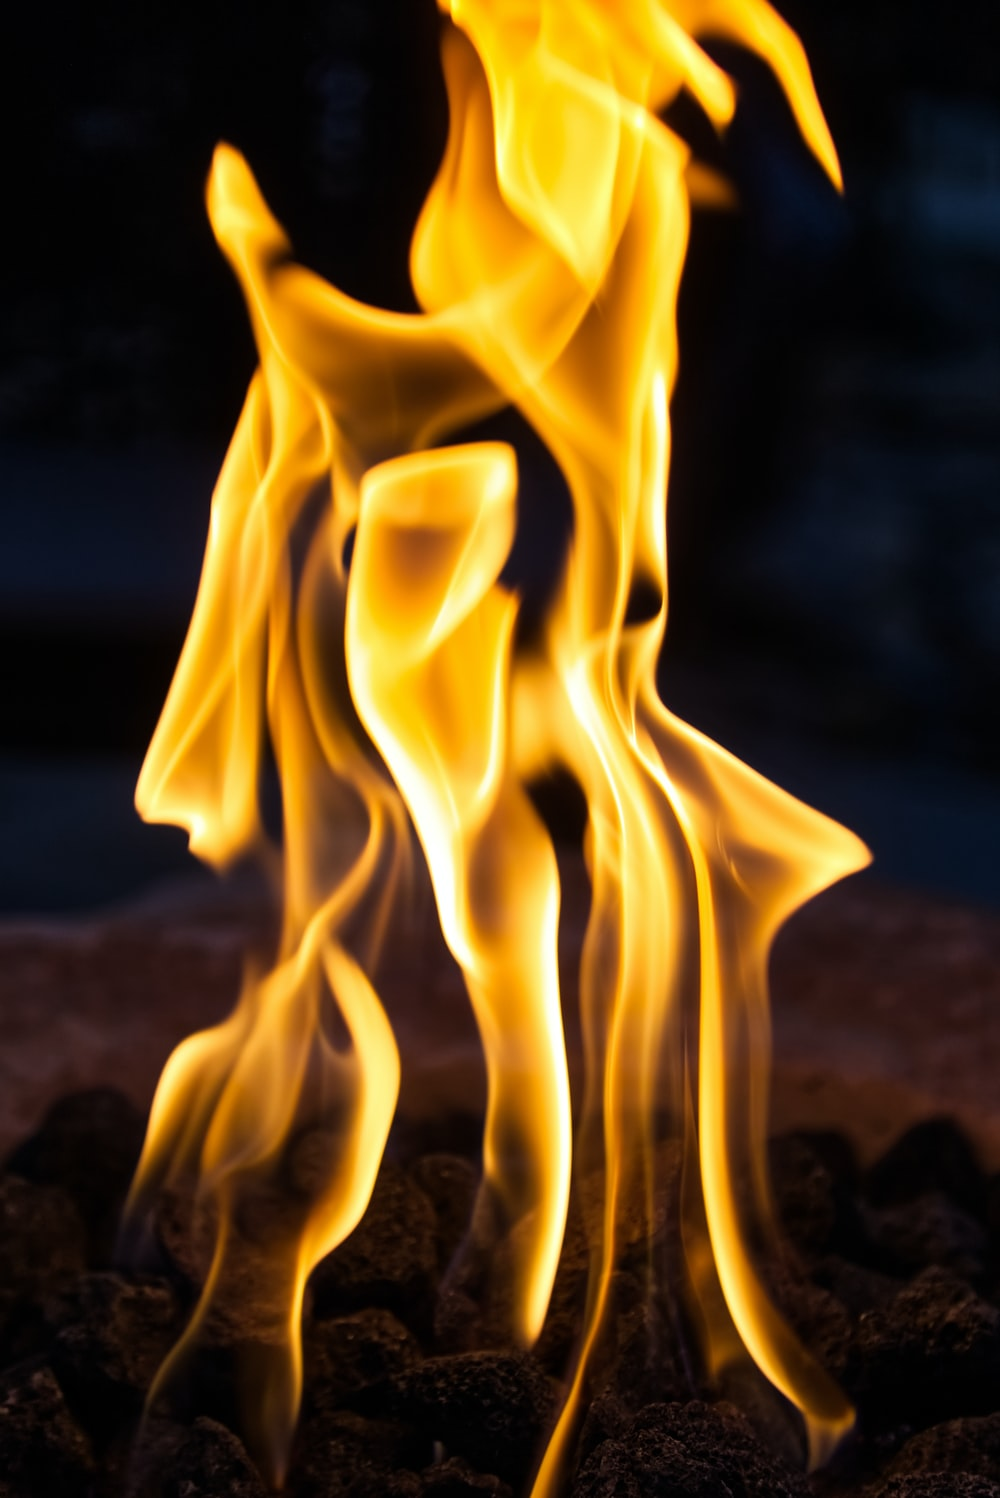 yellow fire in close up photography